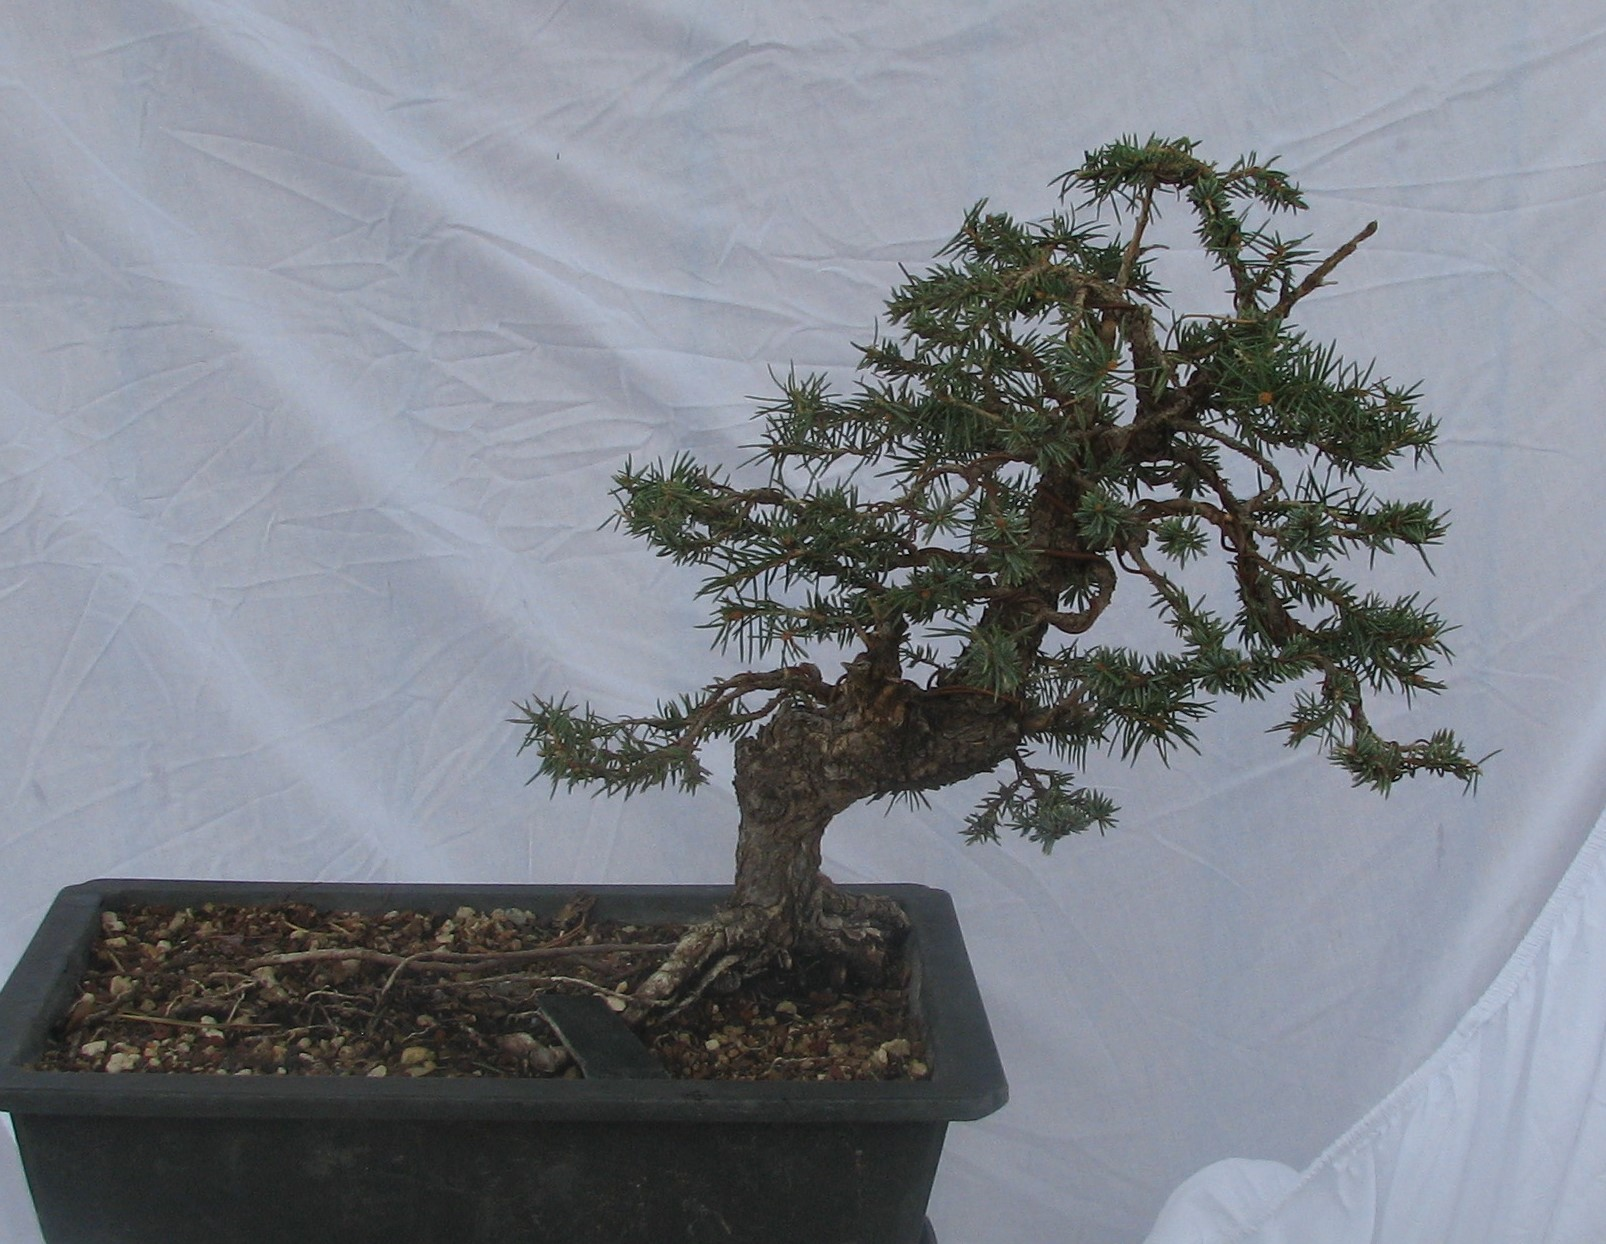 Colorado Bonsai Picea Pungens Colorado Blue Spruce Bonsai Colorado Rocky Mountain Bonsai Suiseki